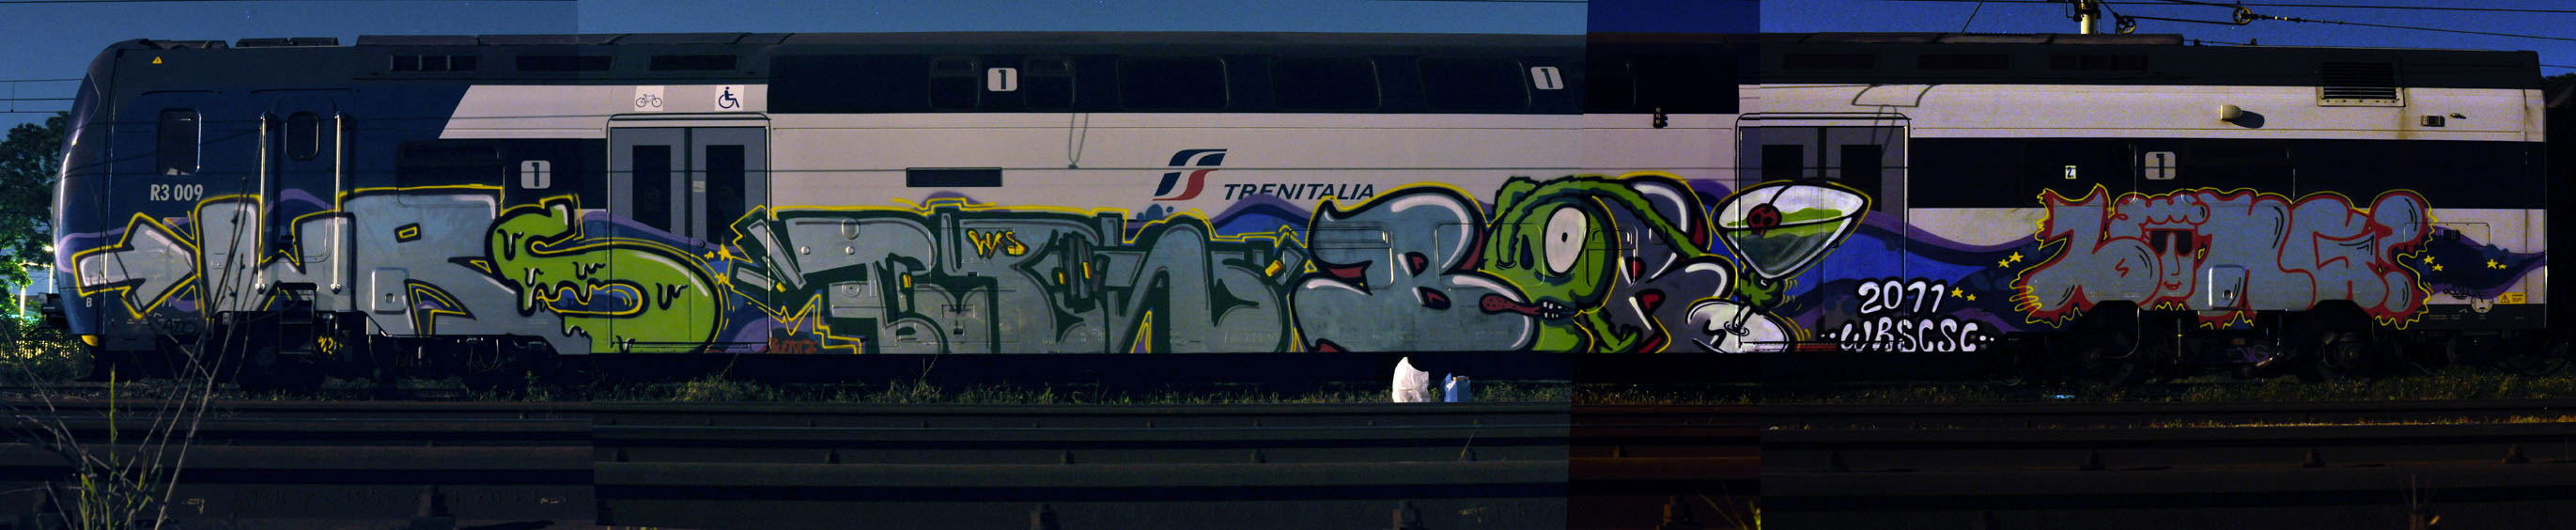 wrs | kaio | buono | bery | bong | train | night | italy